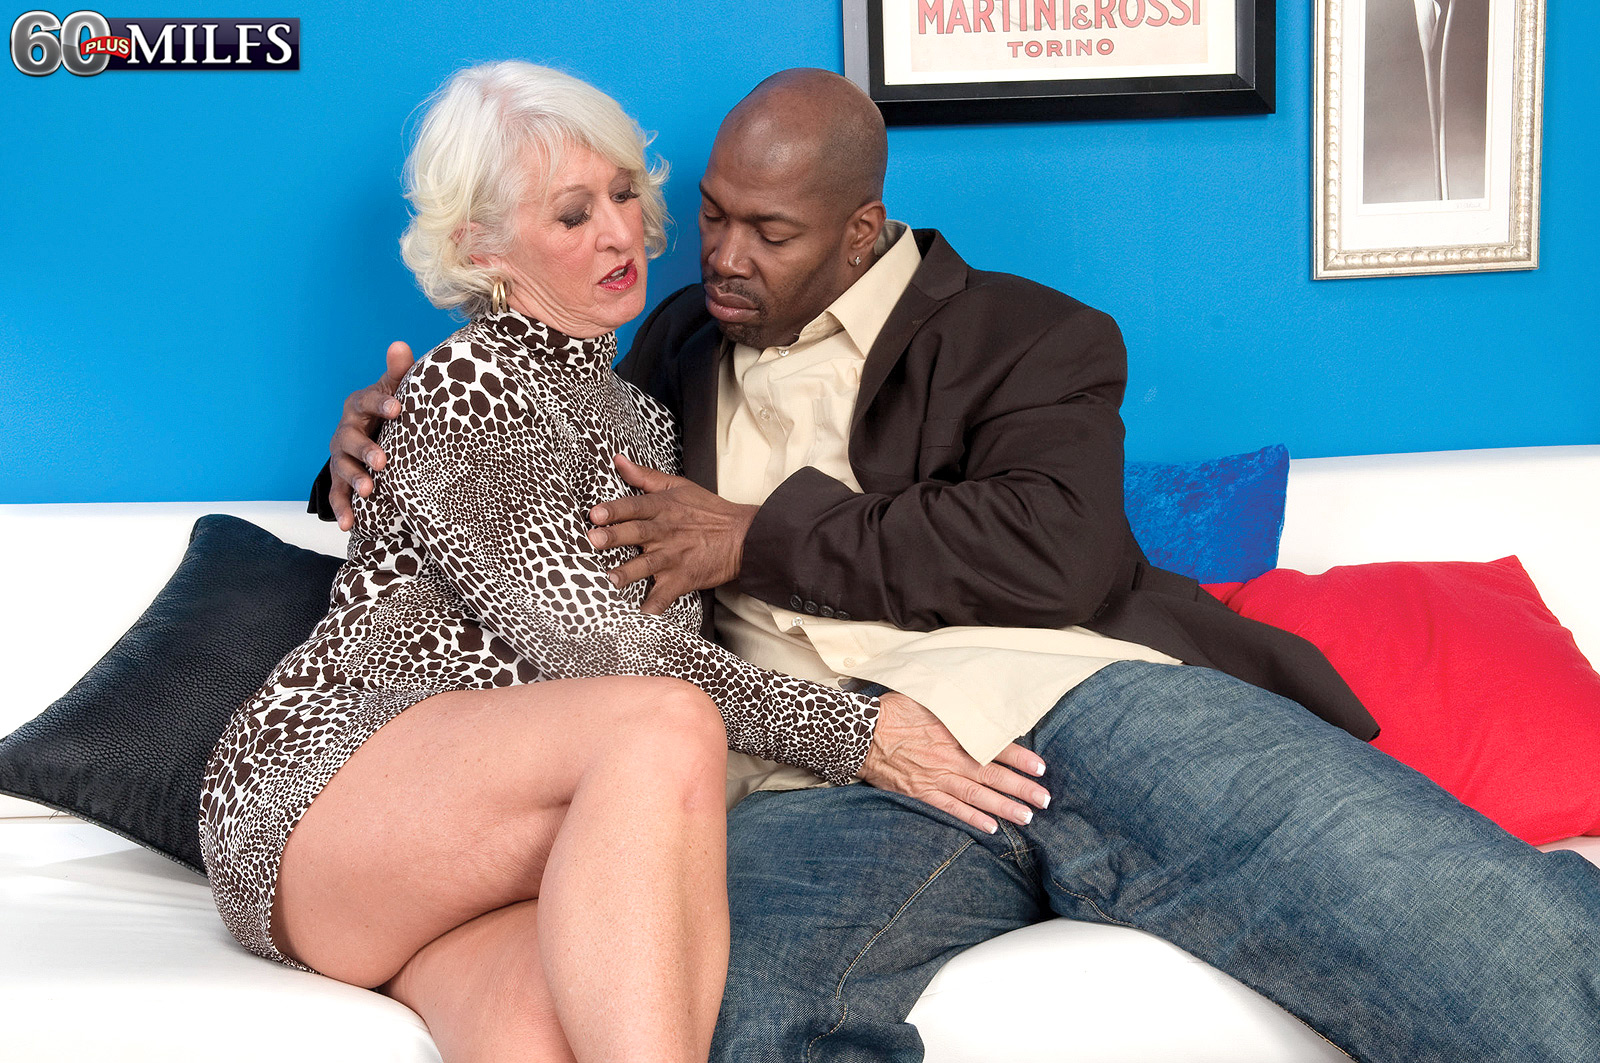 60 plus milfs - jeannie lou's big black cock creampie - jeannie lou